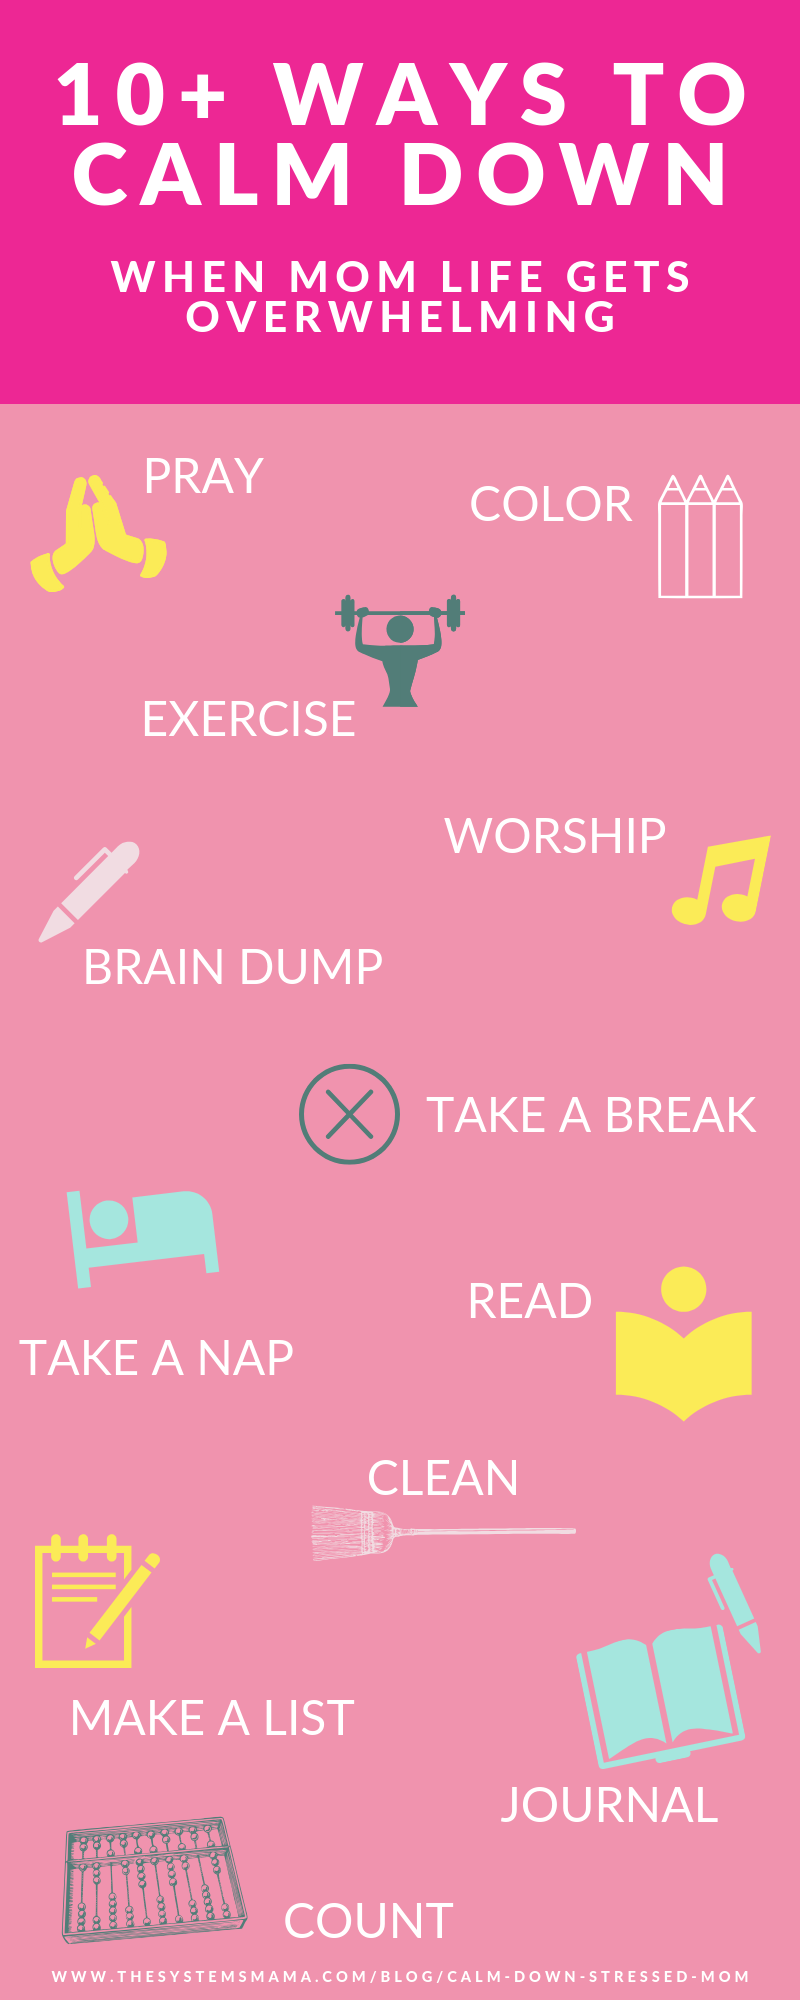 things to do when mom life has you stressed and overwhelmed